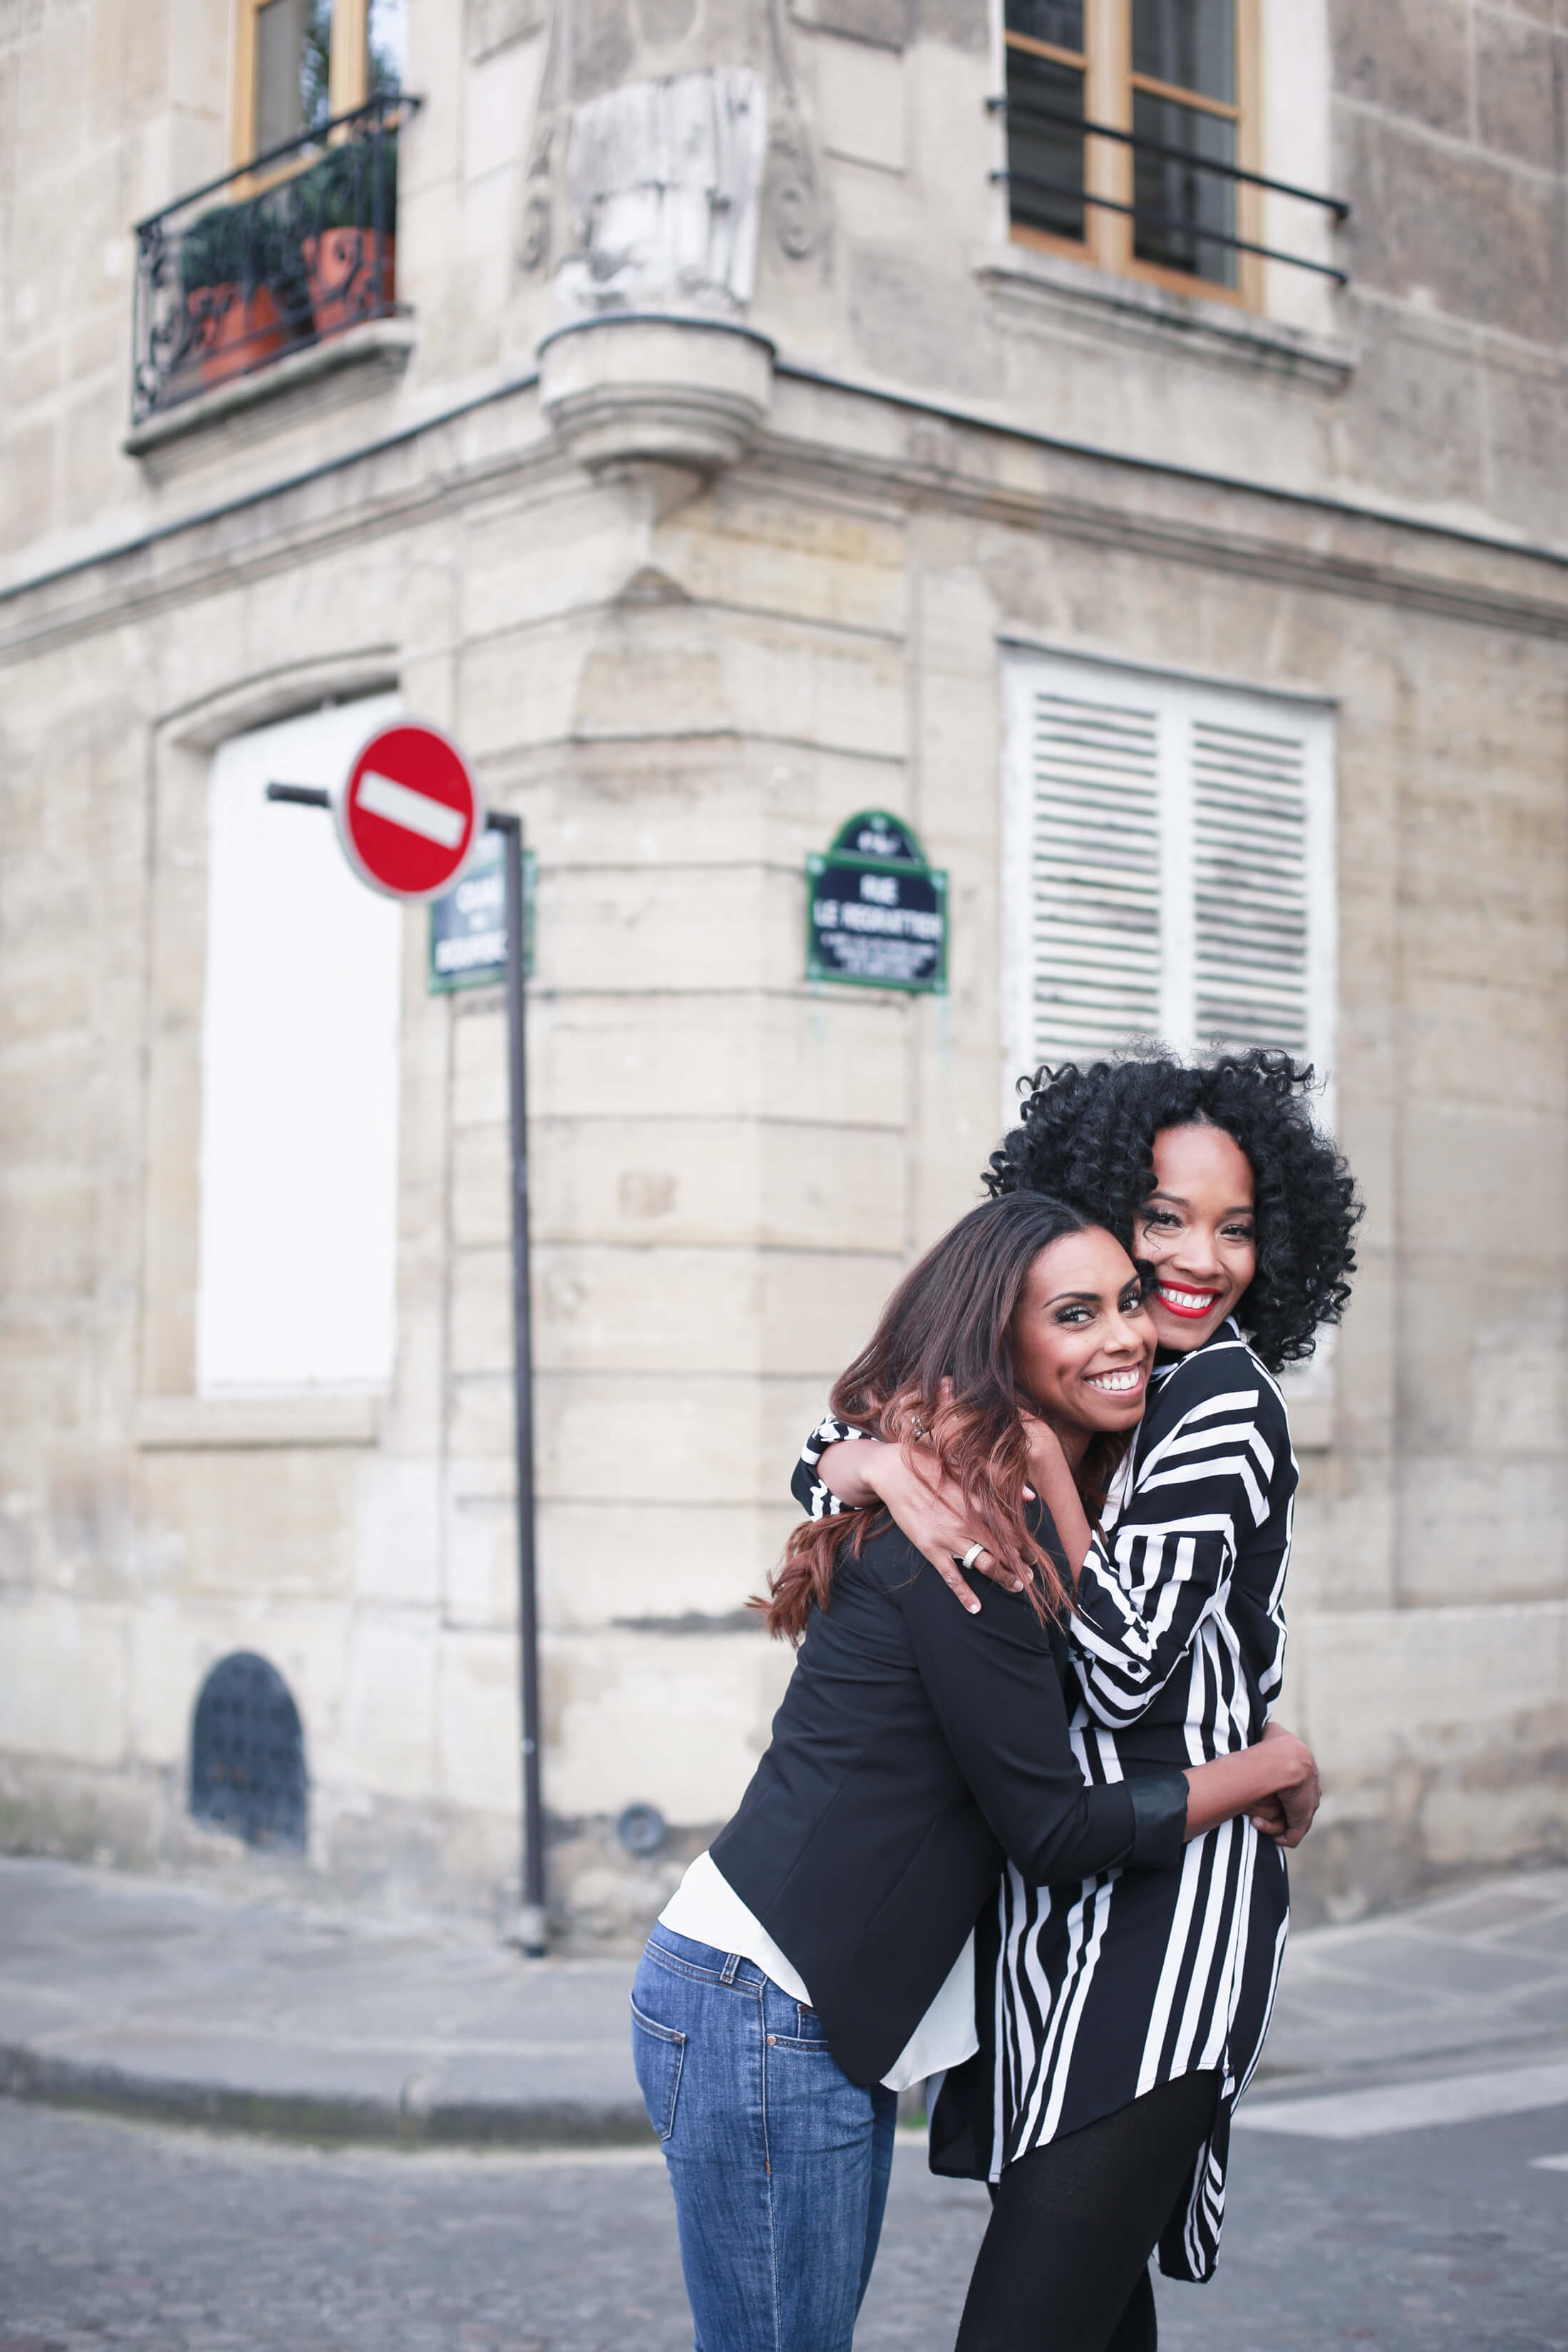 Photo: Lucille in Paris for Flytographer